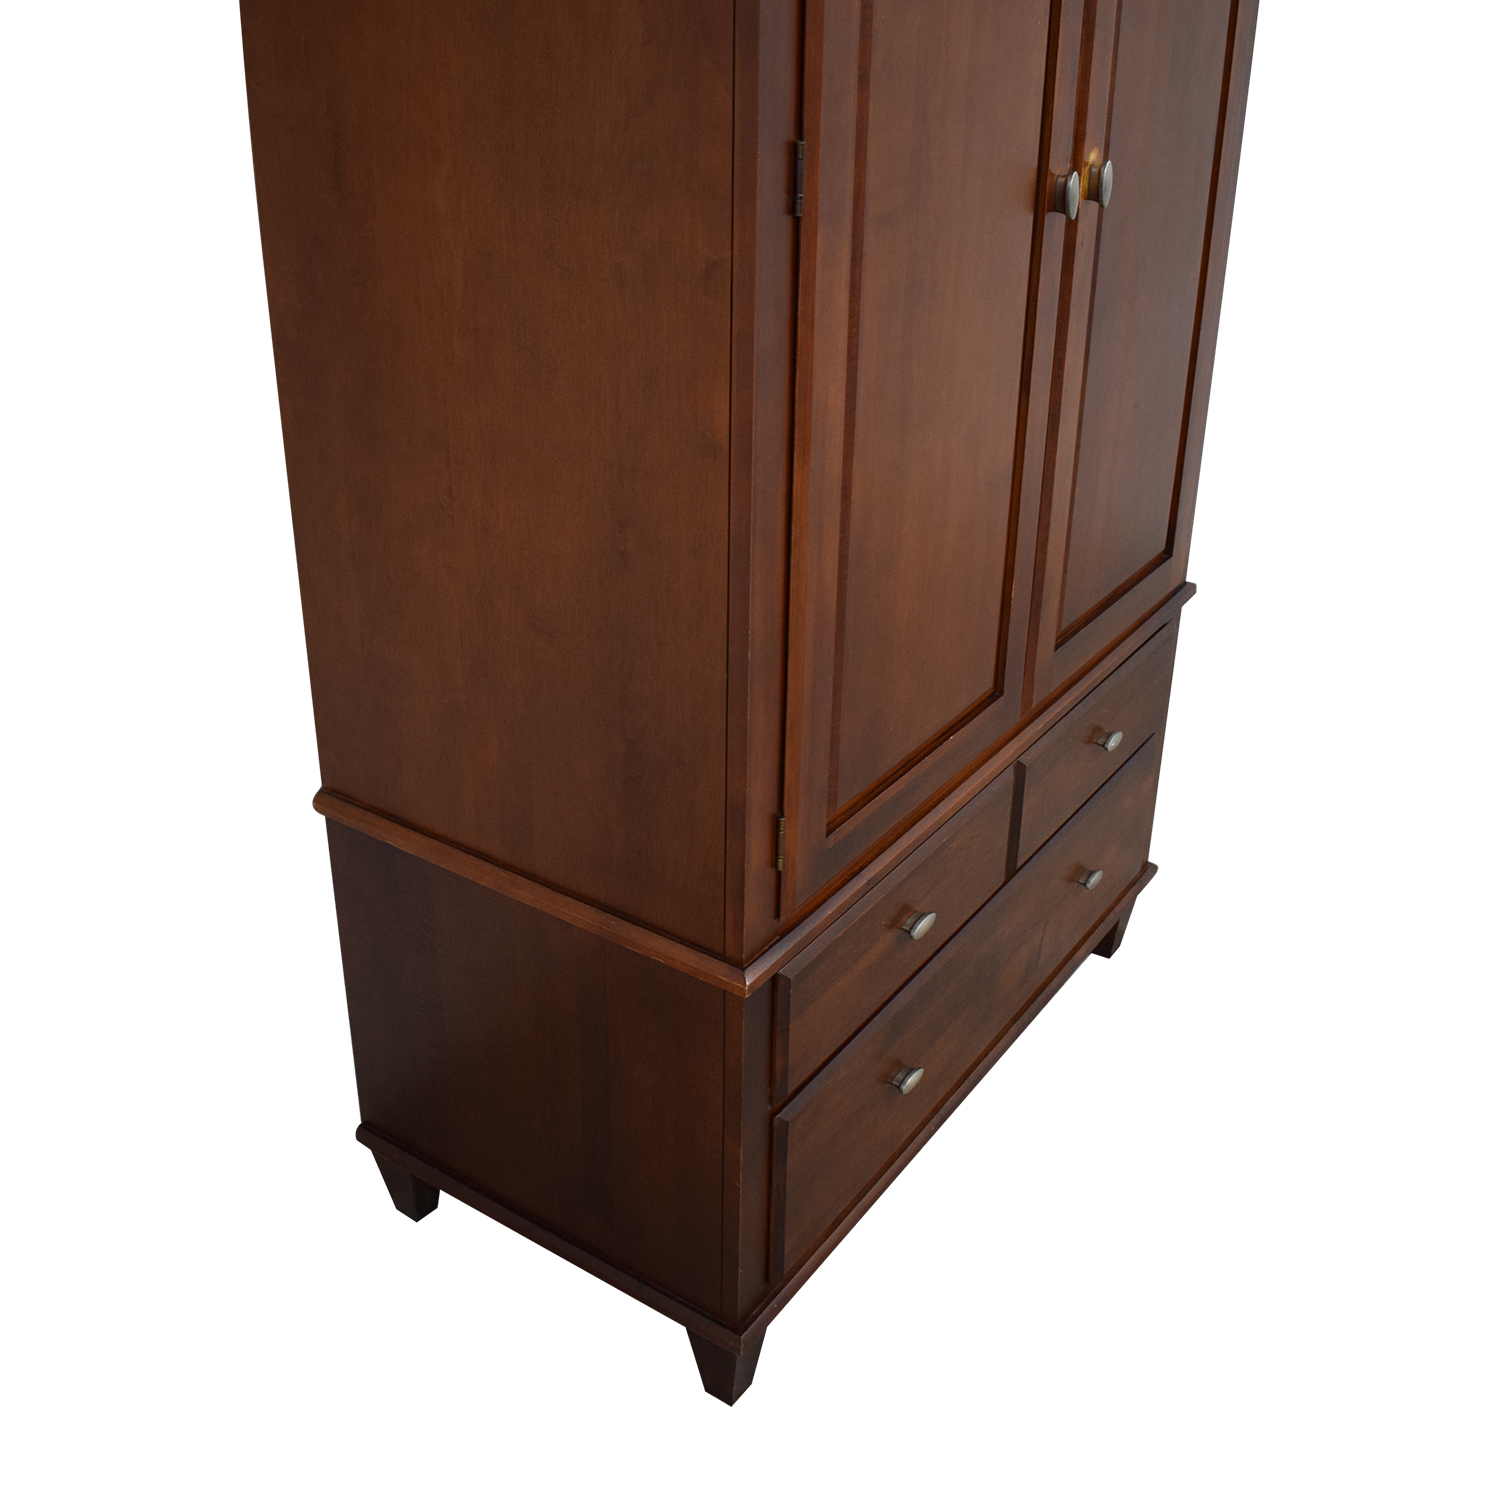 Ethan Allen Ethan Allen Four Drawer Armoire coupon